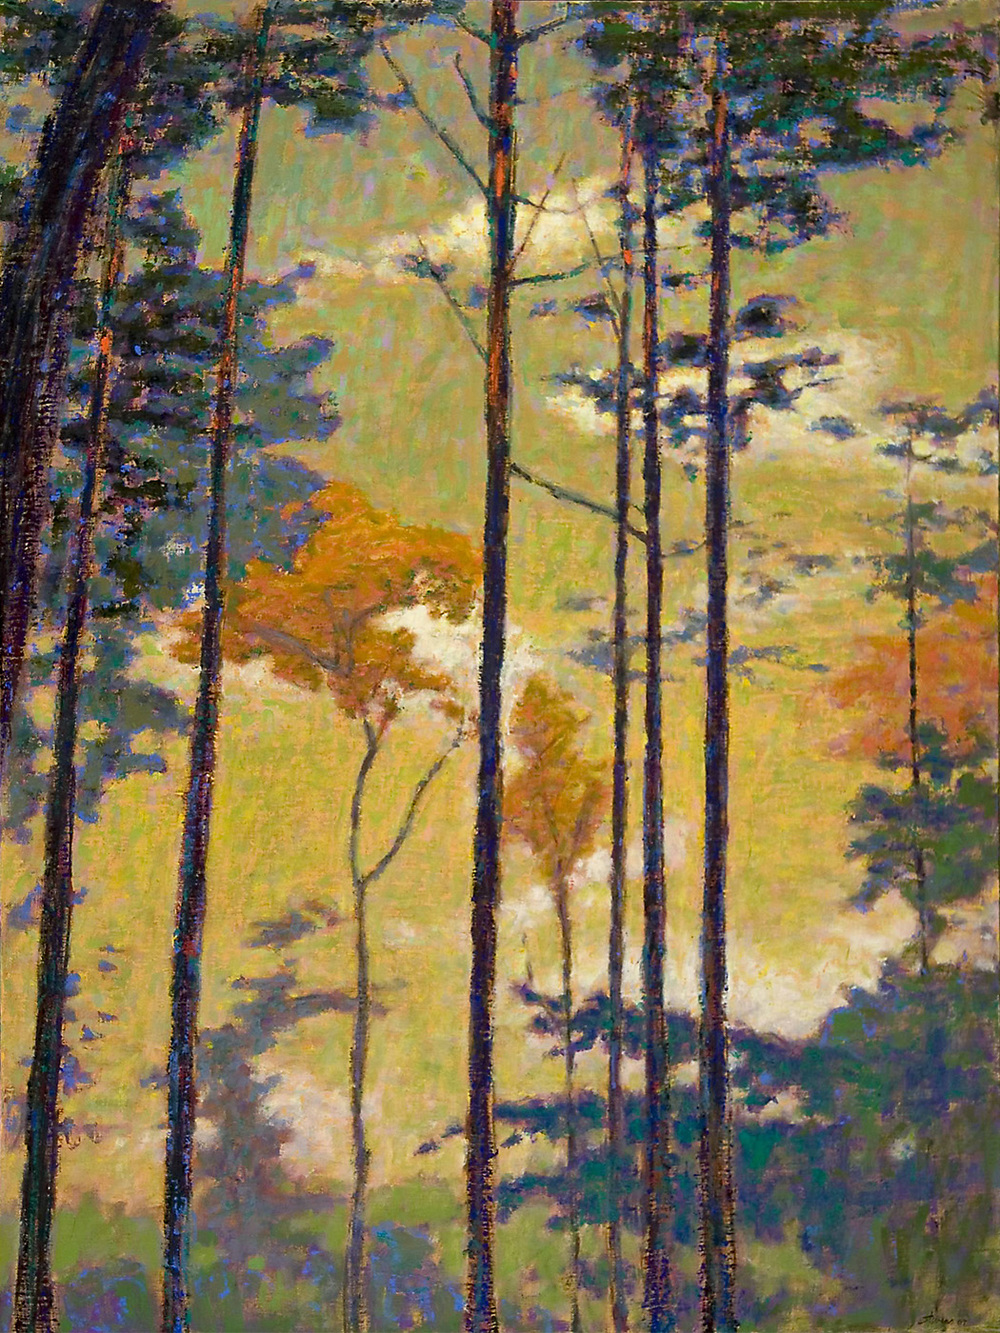 Trees and Sky II   | oil on canvas | 48 x 36"